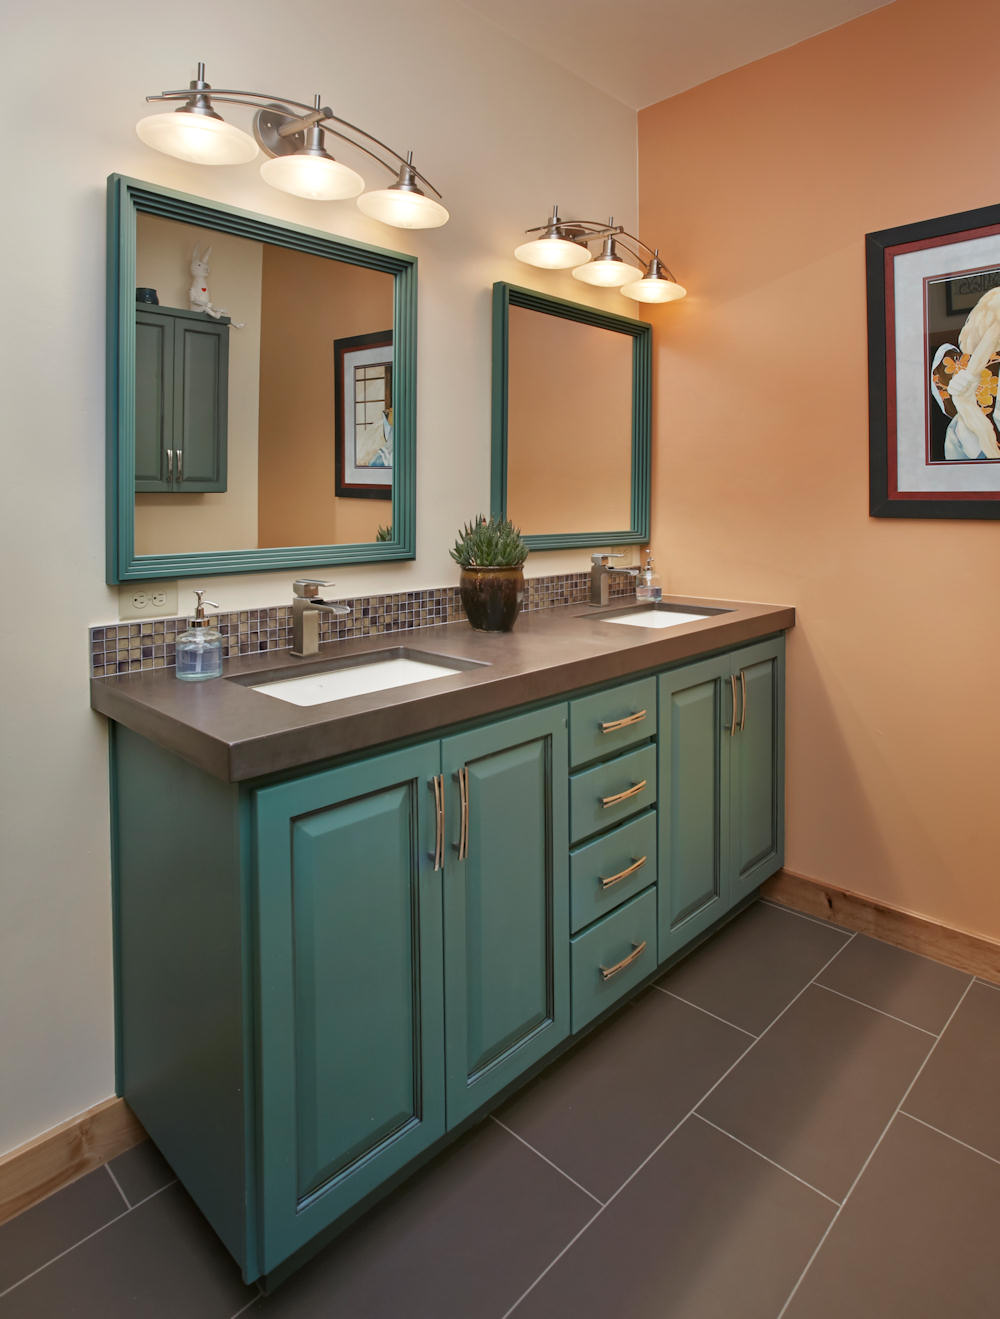 bathrooms kitchen remodeling tucson az accessible roll eclectic guest bath slate countertop with dual under mounted